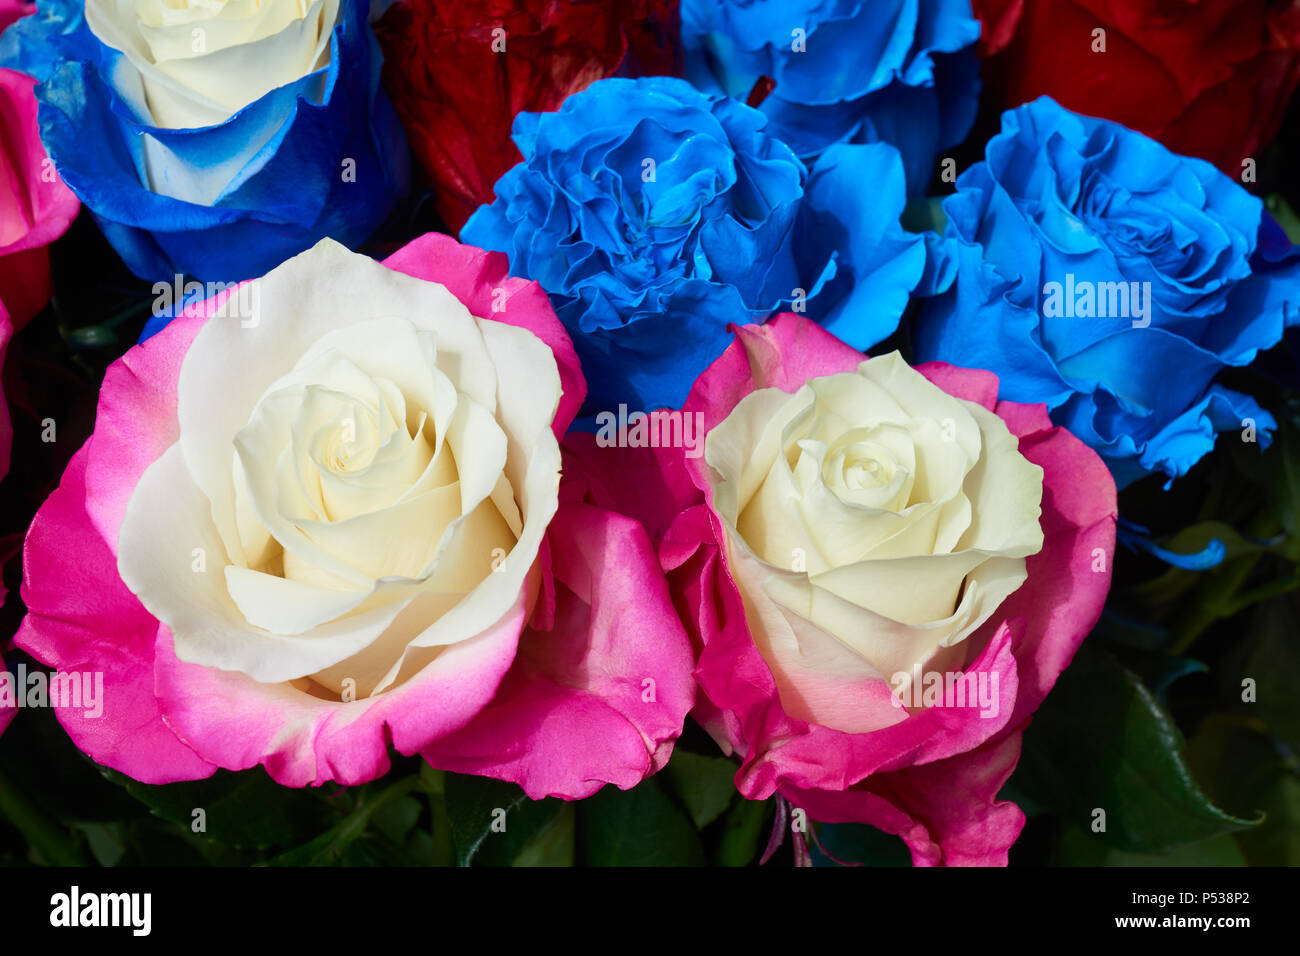 Bunch of multicolored roses as floral background. White, pink and blue colors. - Stock Image